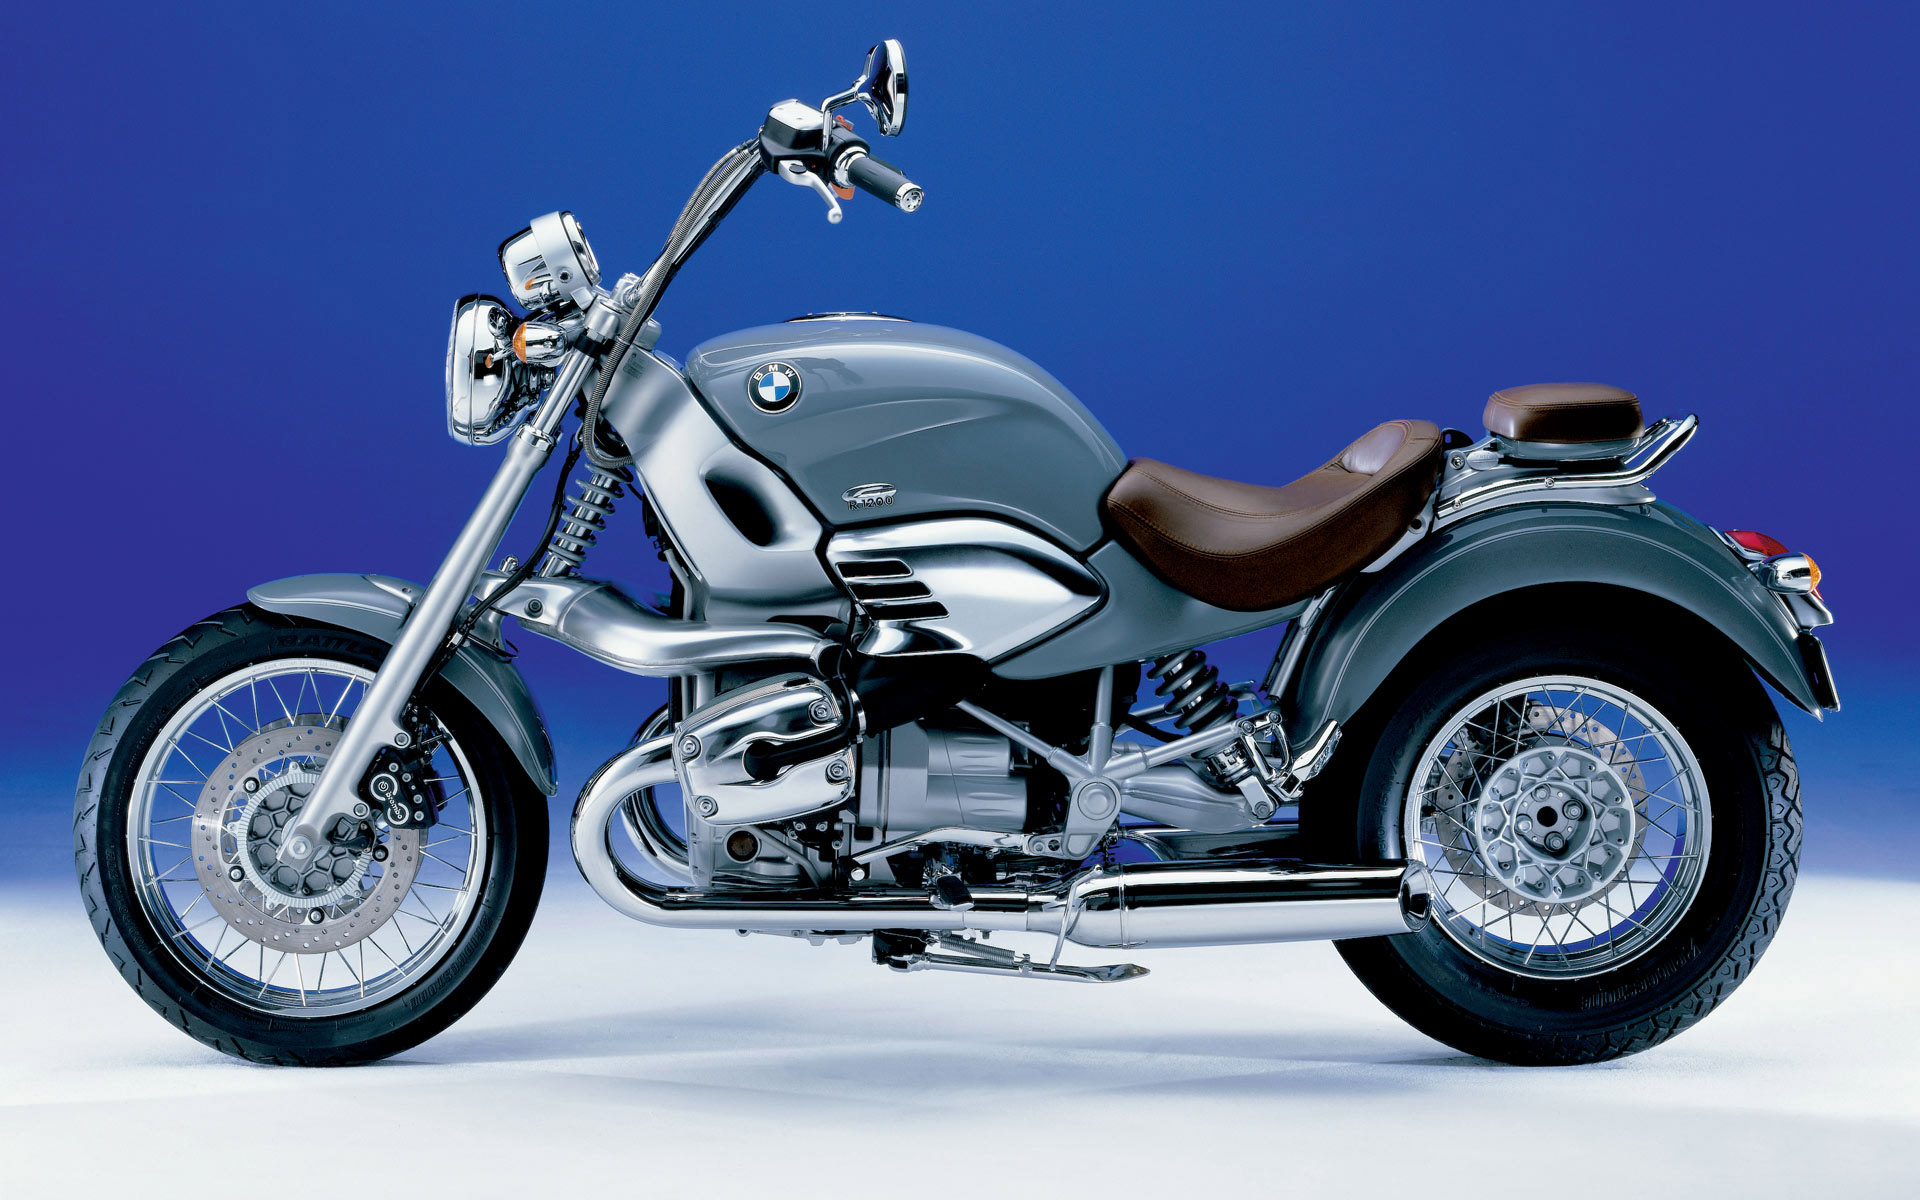 bmw motorcycles awesome motorcycle bike moto r1200c motocycles 1200 site rider